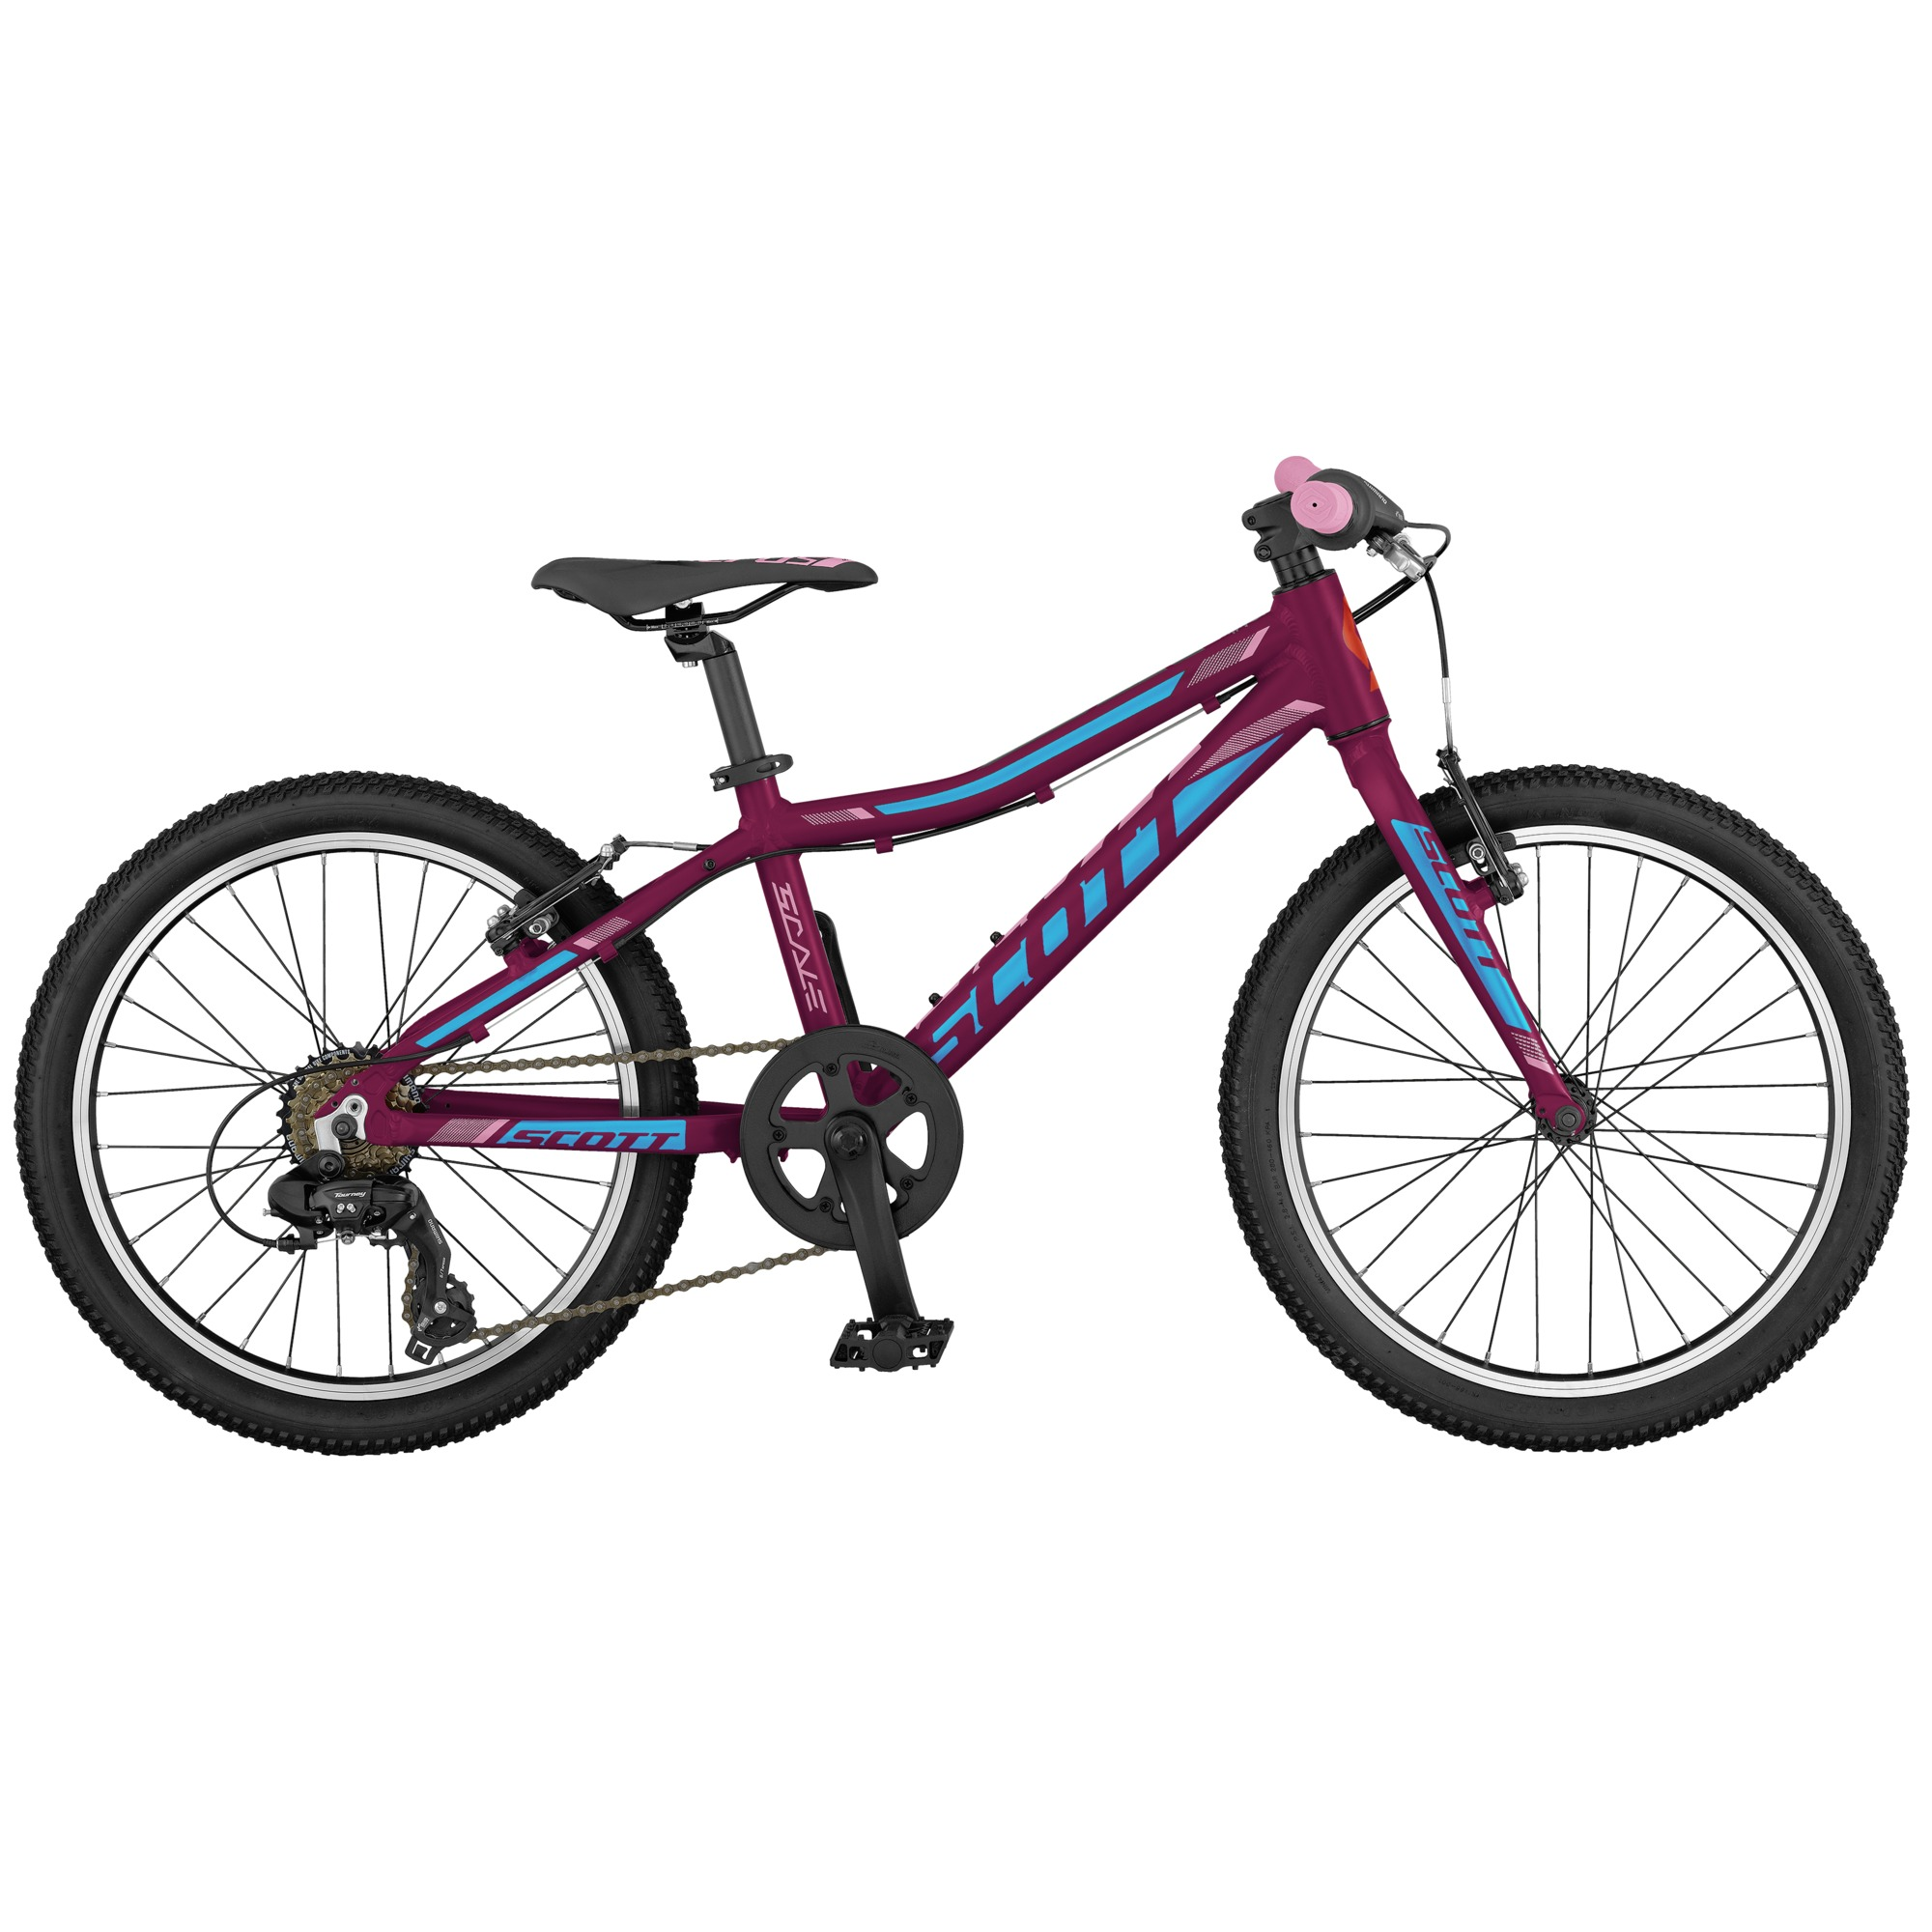 Bike Contessa Comp JR 20 rigid